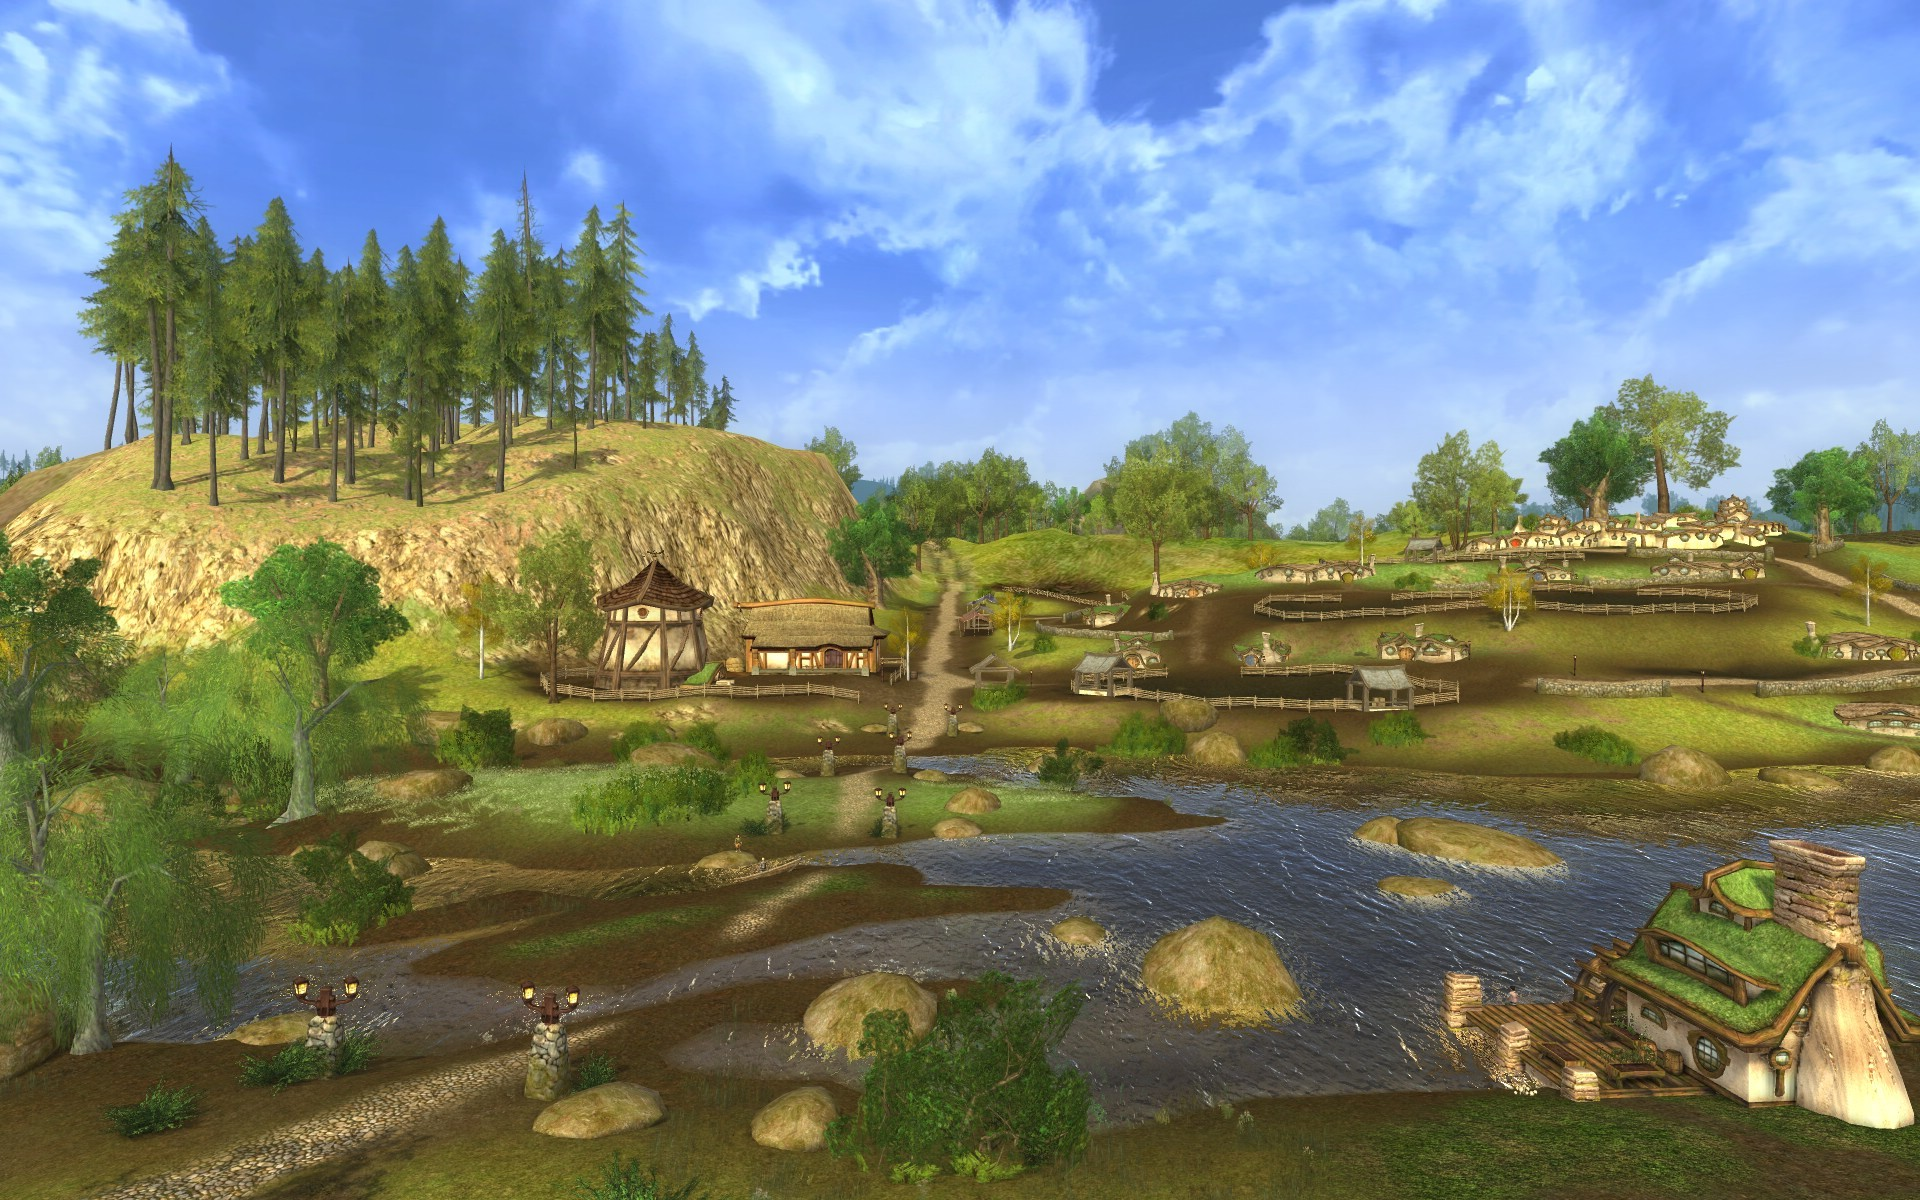 Lord of the Rings Online - The Shire?